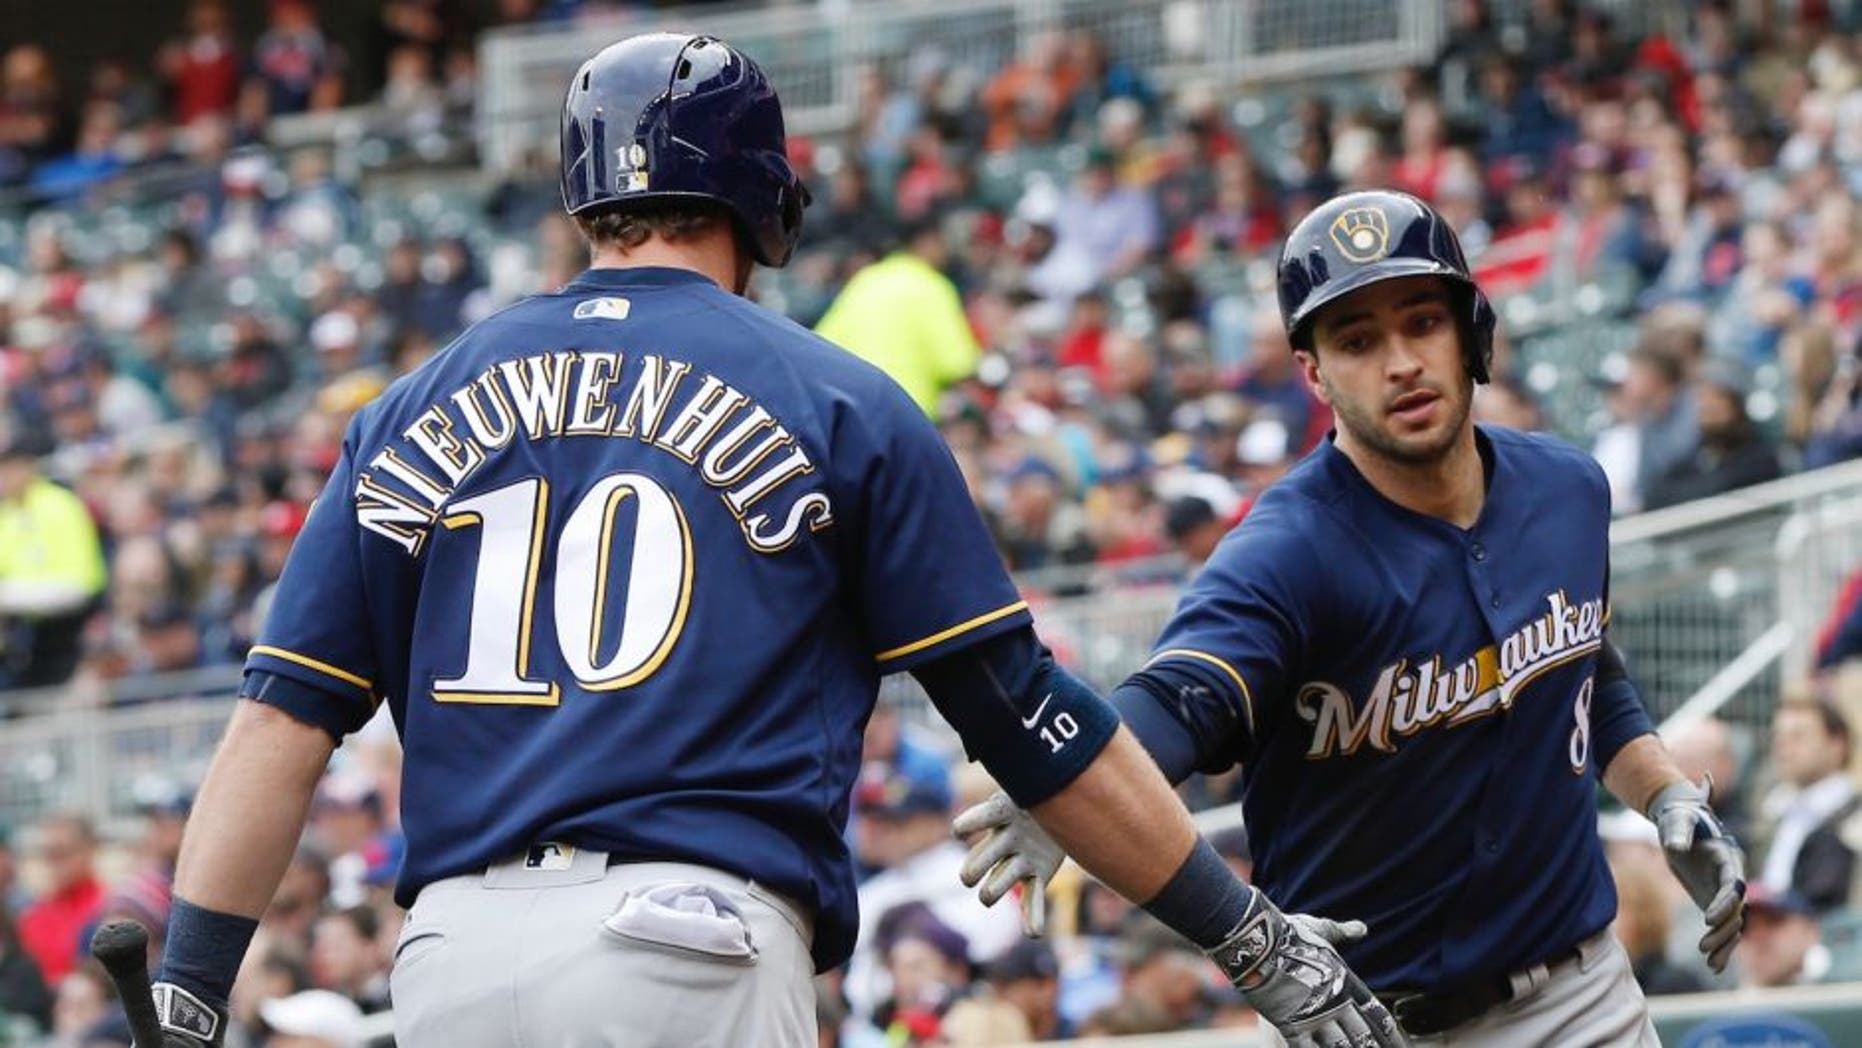 Milwaukee Brewers' Ryan Braun, right, is congratulated by Kirk Nieuwenhuis after scoring on a sacrifice fly by Chris Carter off Minnesota Twins pitcher Ervin Santana, right, in the fifth inning of a baseball game Tuesday, April 19, 2016, in Minneapolis. (AP Photo/Jim Mone)